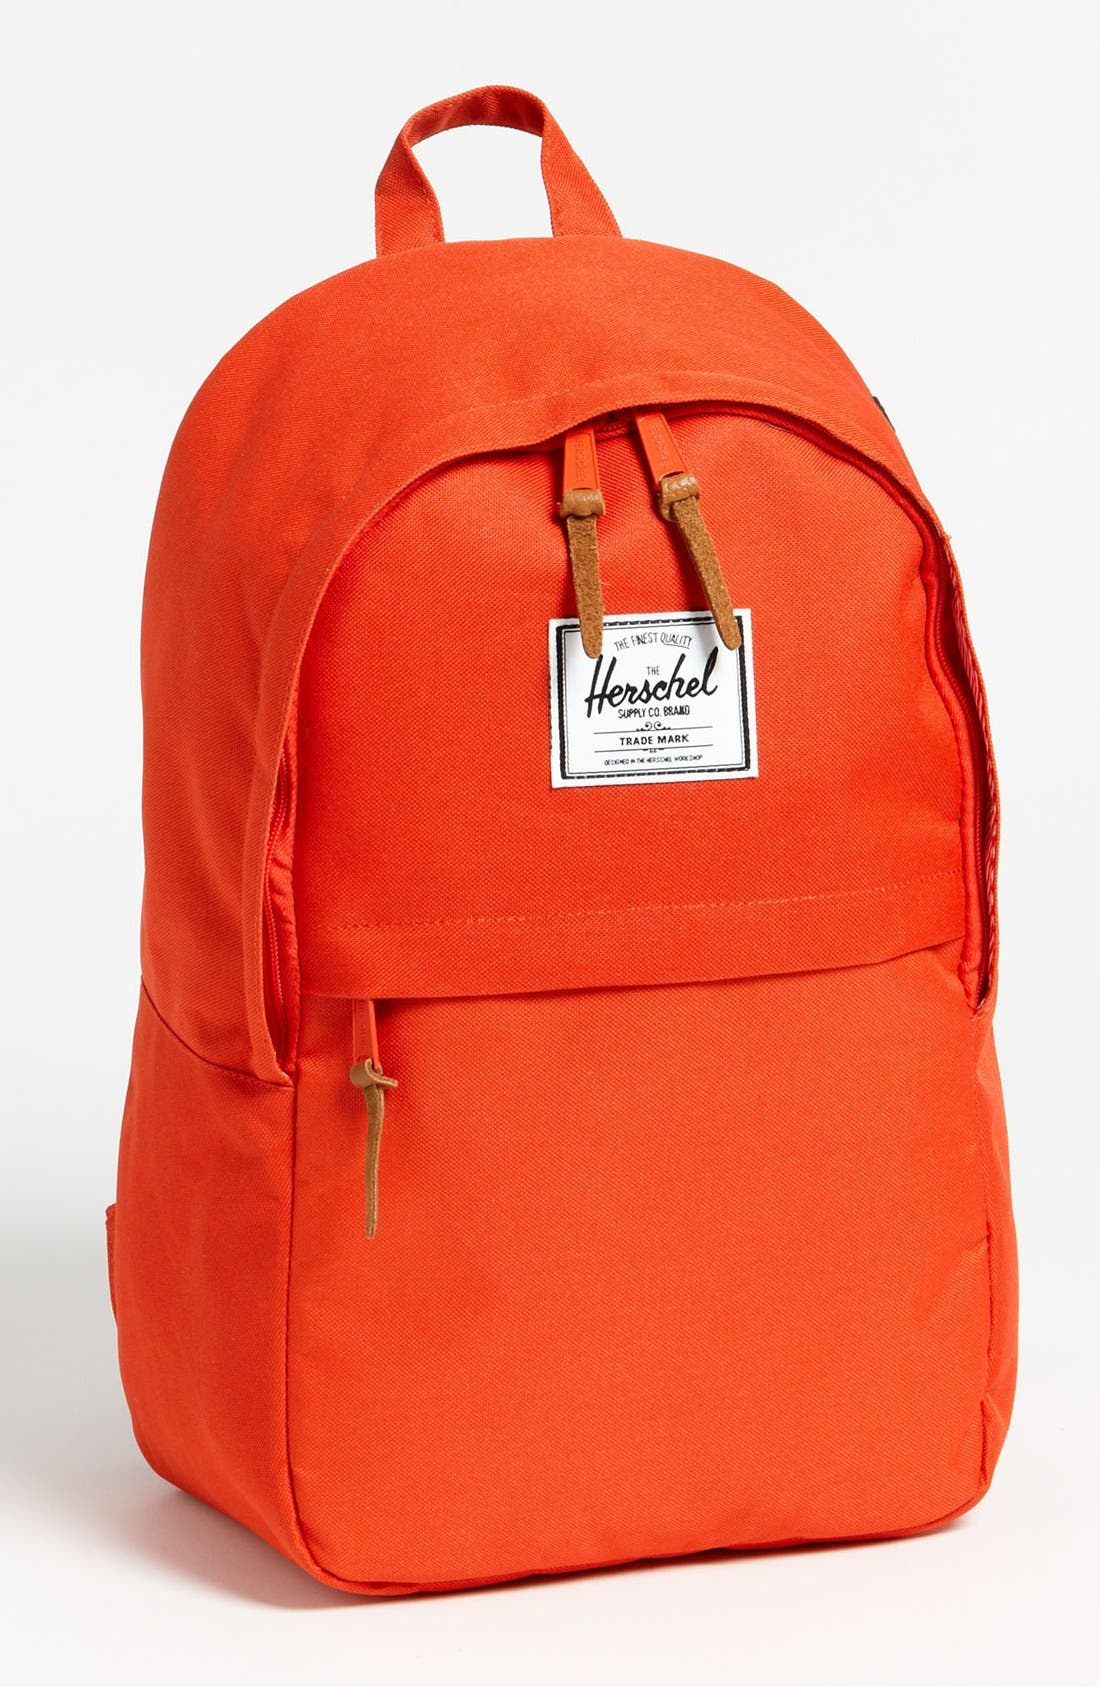 Alternate Image 1 Selected - Herschel Supply Co. 'Standard' Backpack